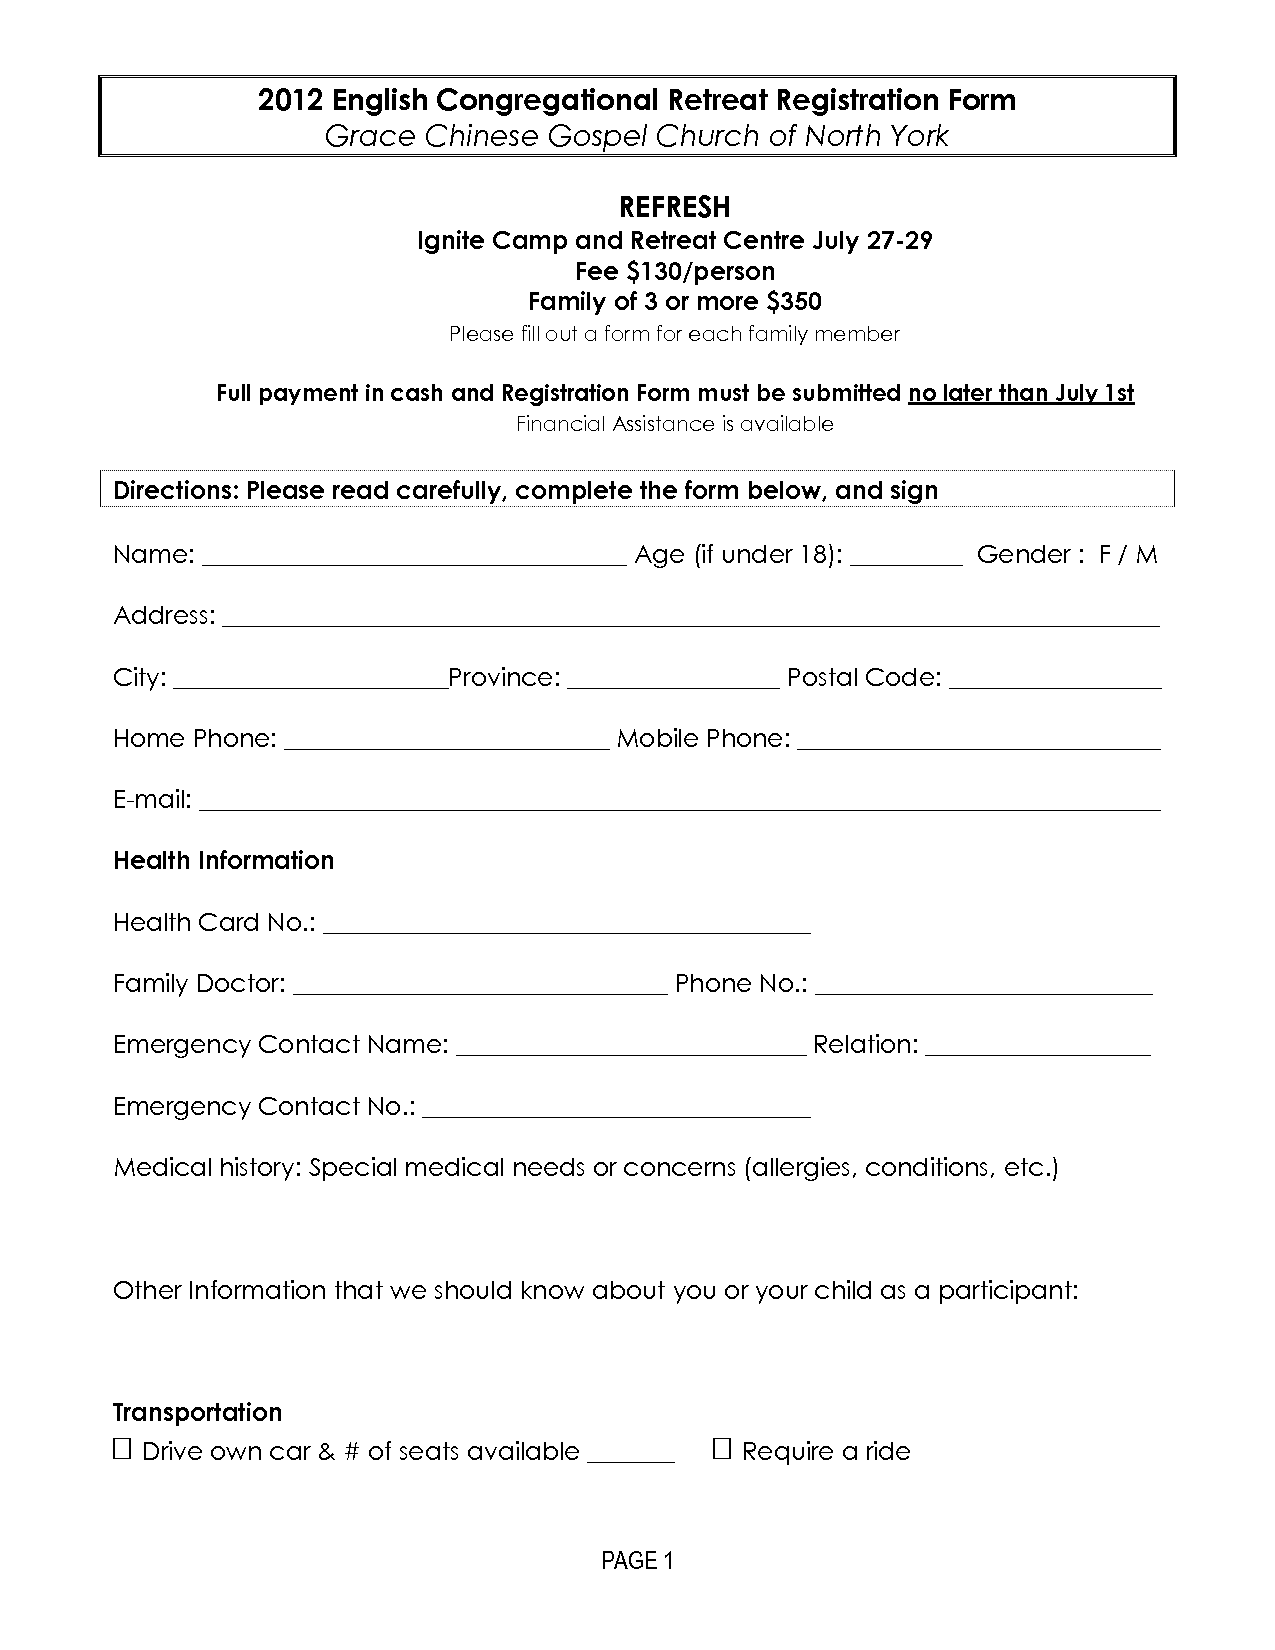 Retreat+registration+forms | Retreat Registration Form Template Word